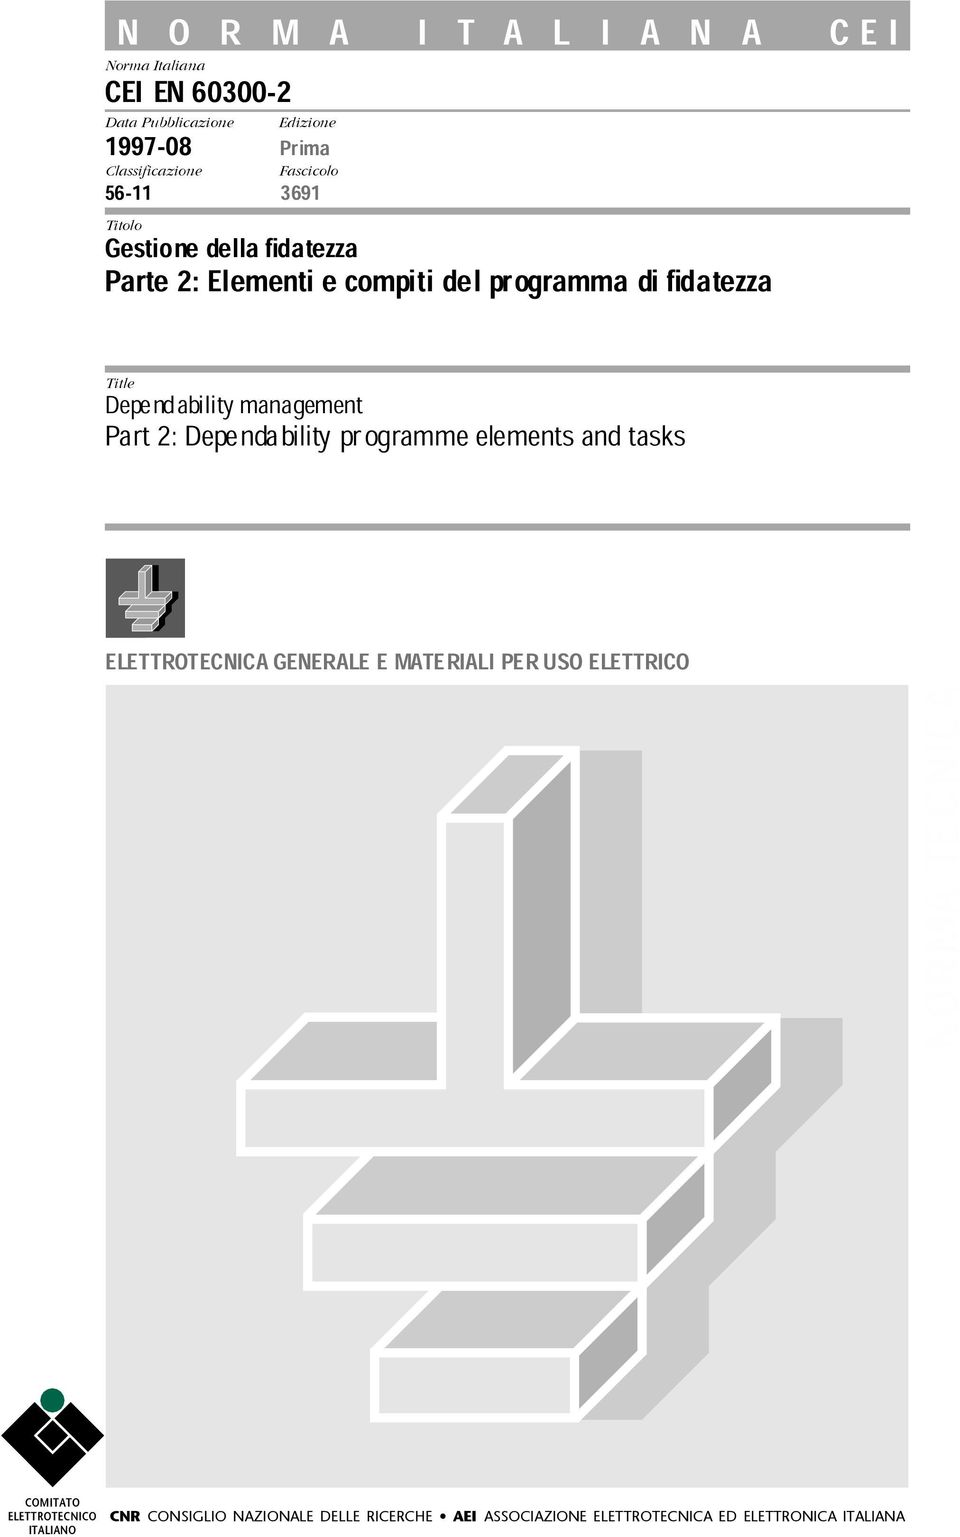 Depedabilitymaagemet Part 2:Depedability programmeelemets ad tasks ELETTROTECNICA GENERALE E MATERIALIPER USO